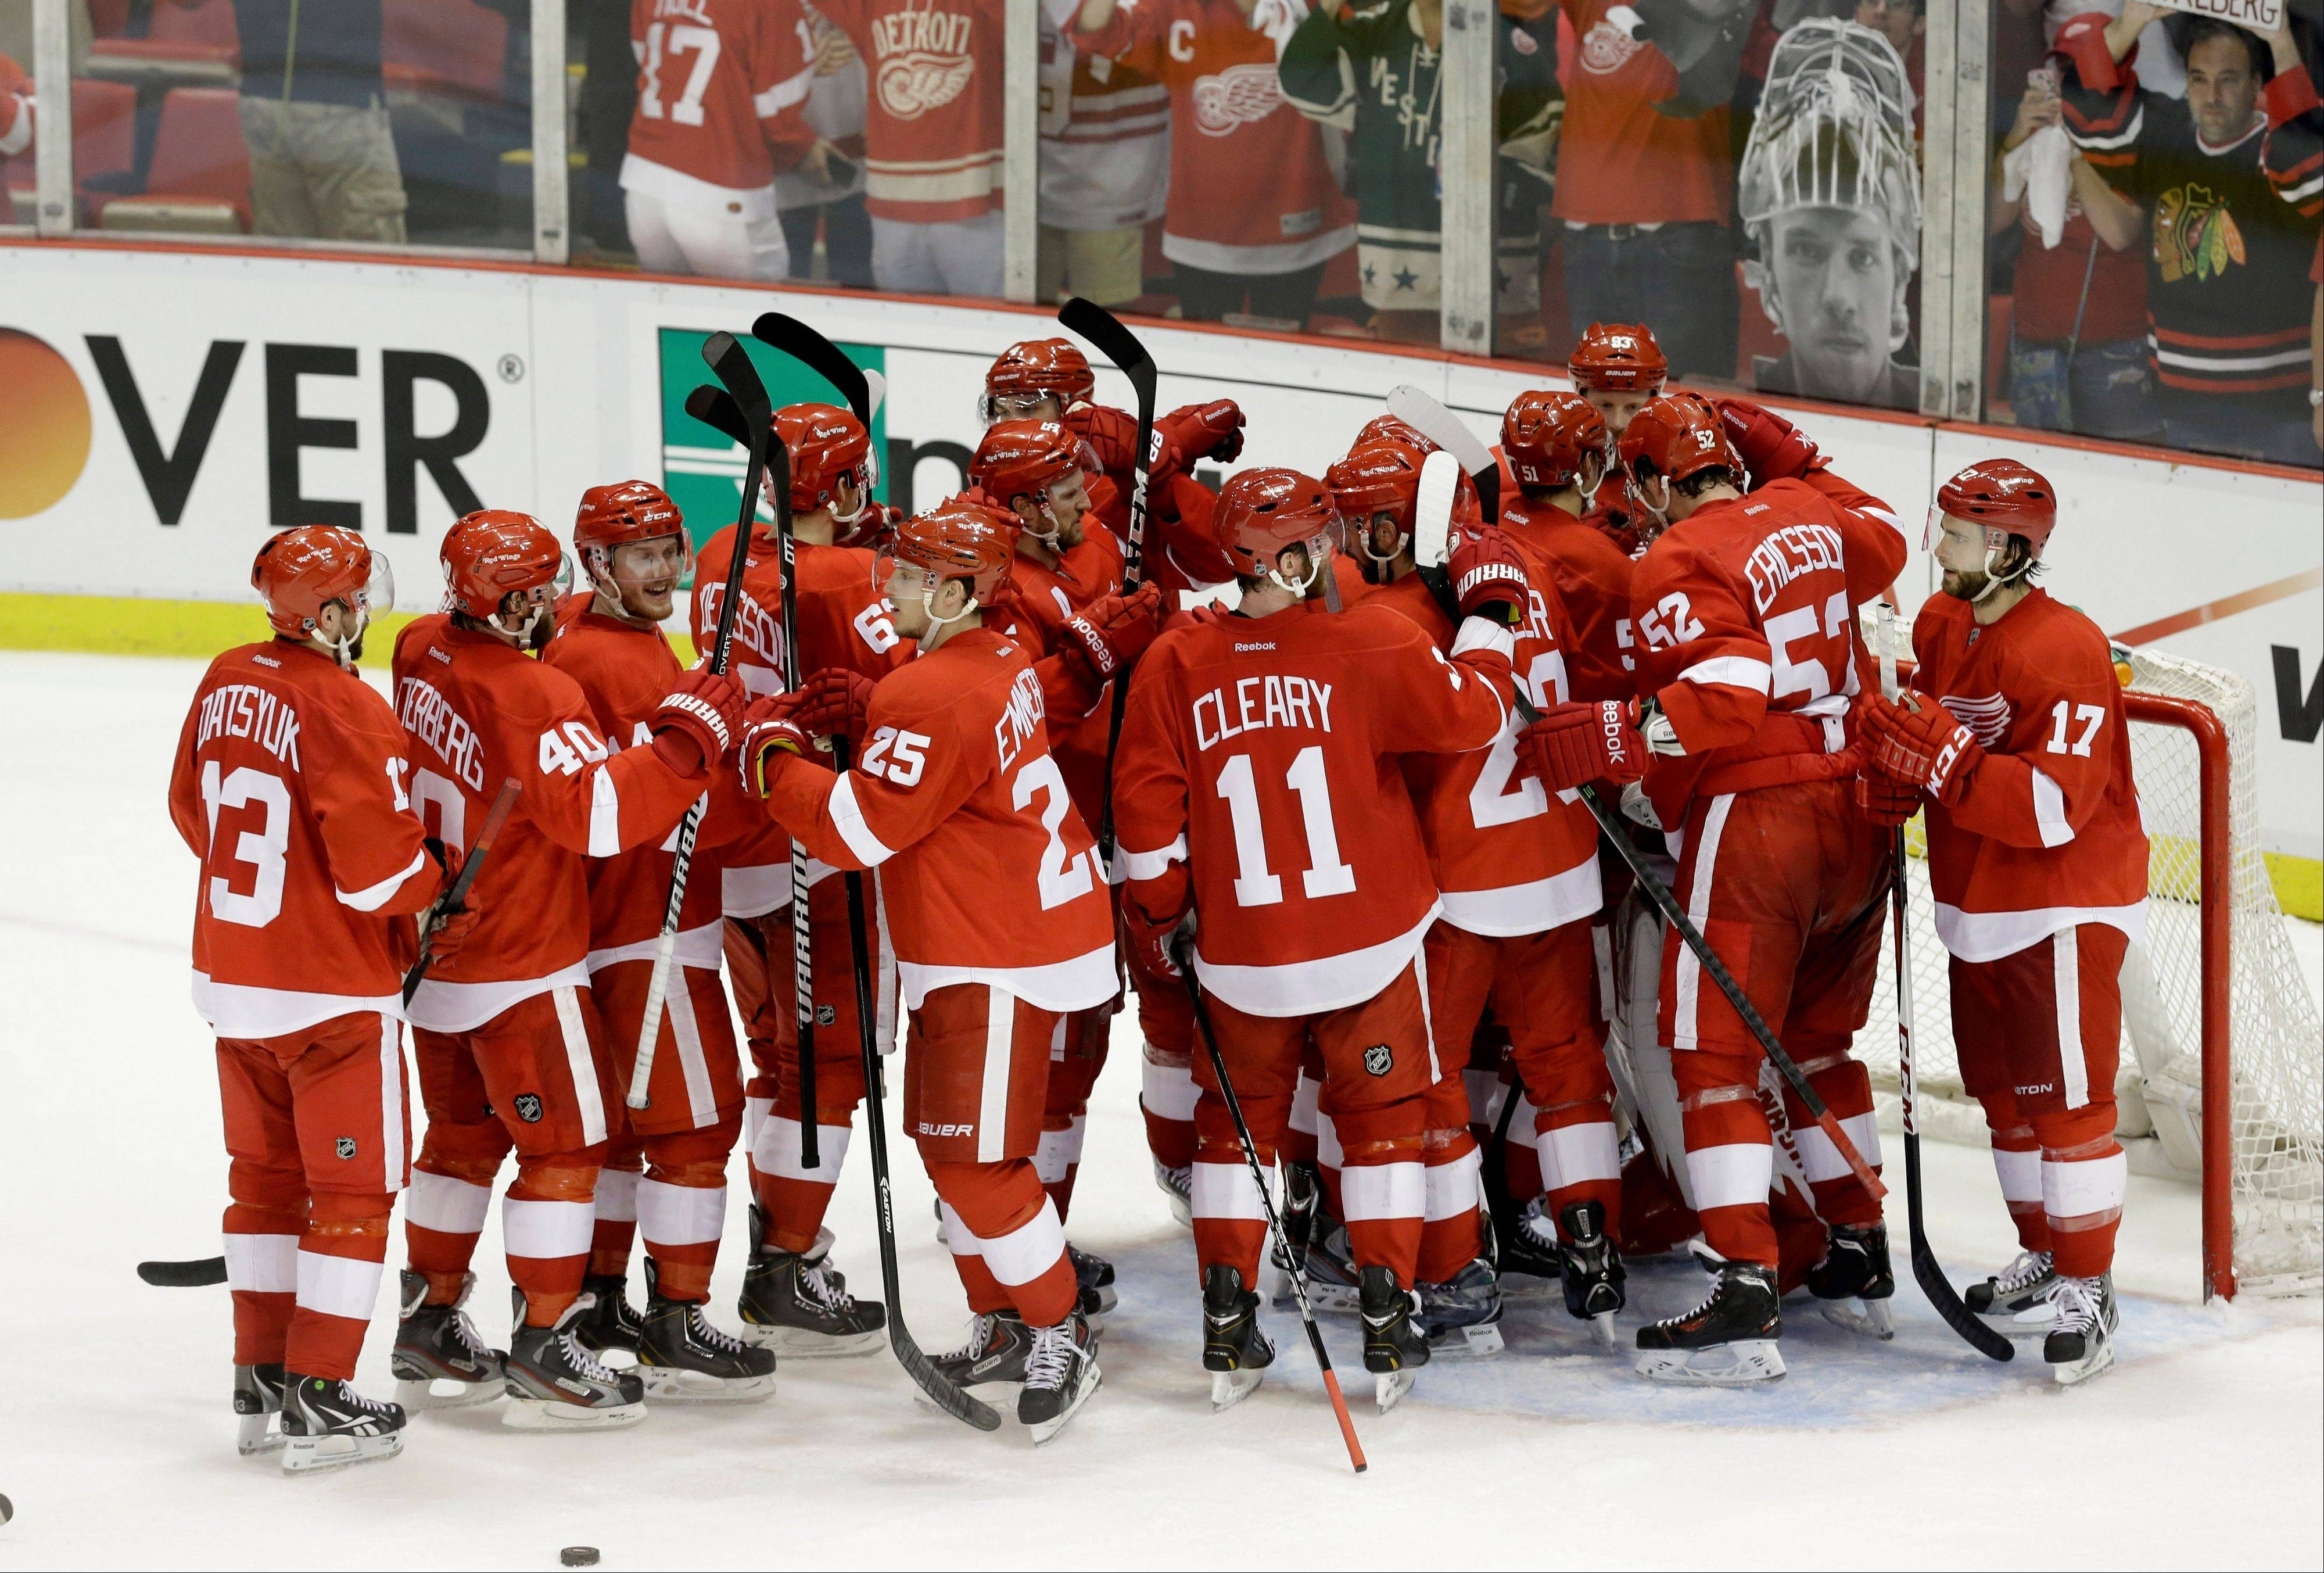 Who�s to say the Detroit Red Wings, here celebrating their 3-1 victory in Game 3, haven�t evolved into a team as good and deep and cohesive and gritty and overall dangerous as the Blackhawks?